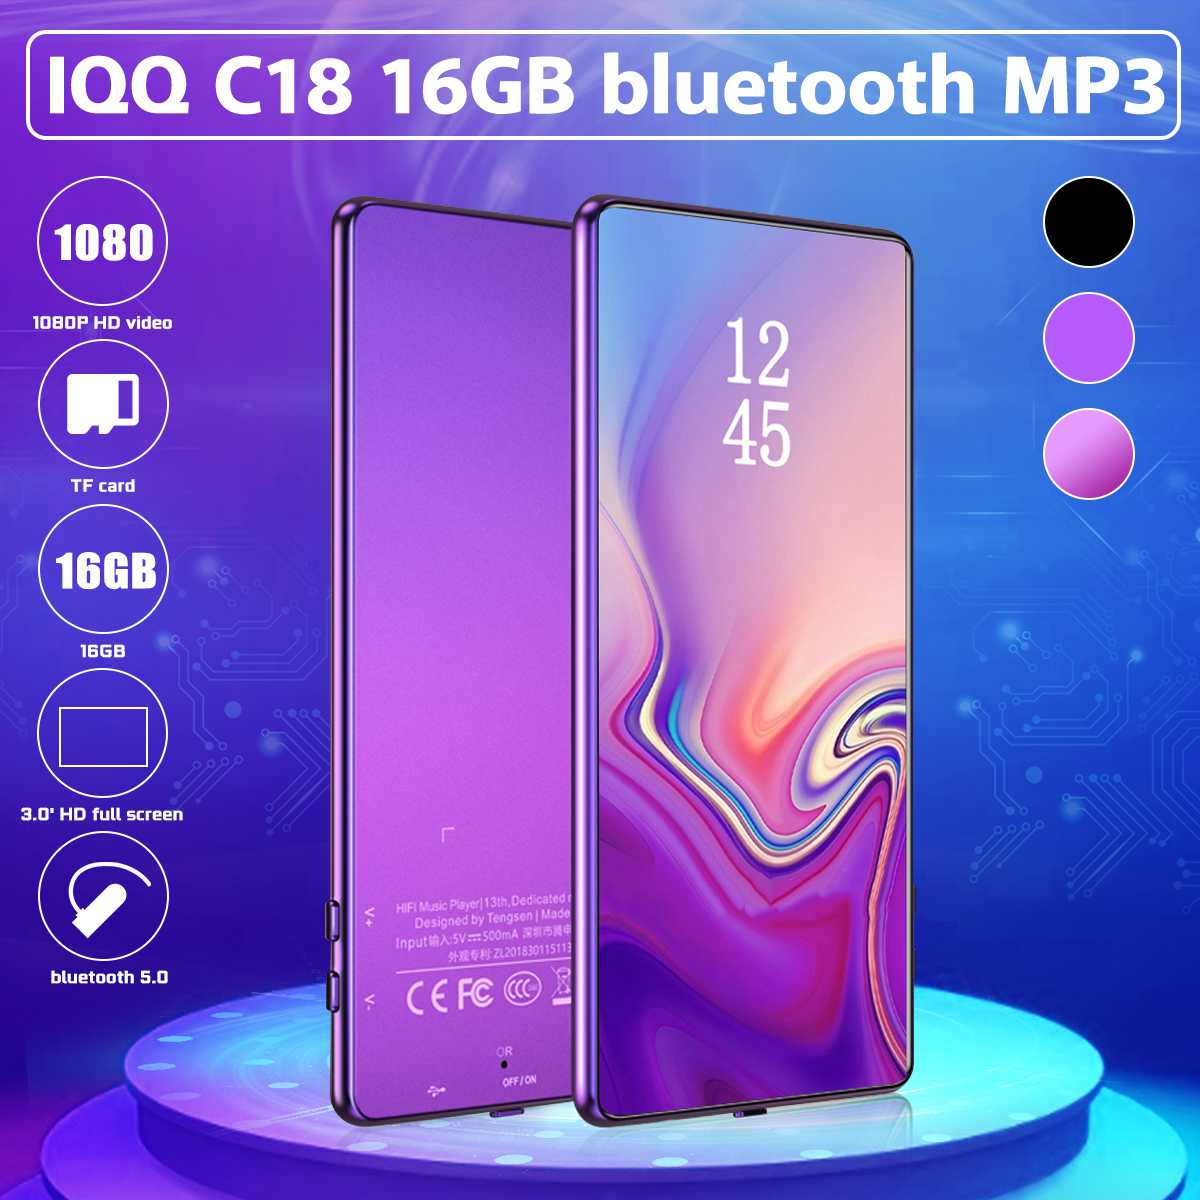 IQQ C18 HIFI <font><b>MP3</b></font> <font><b>Player</b></font> 16G 1080P <font><b>HD</b></font> Video Losslessr bluetooth 5.0 <font><b>Player</b></font> FM E-Book Recording Music Walkman image